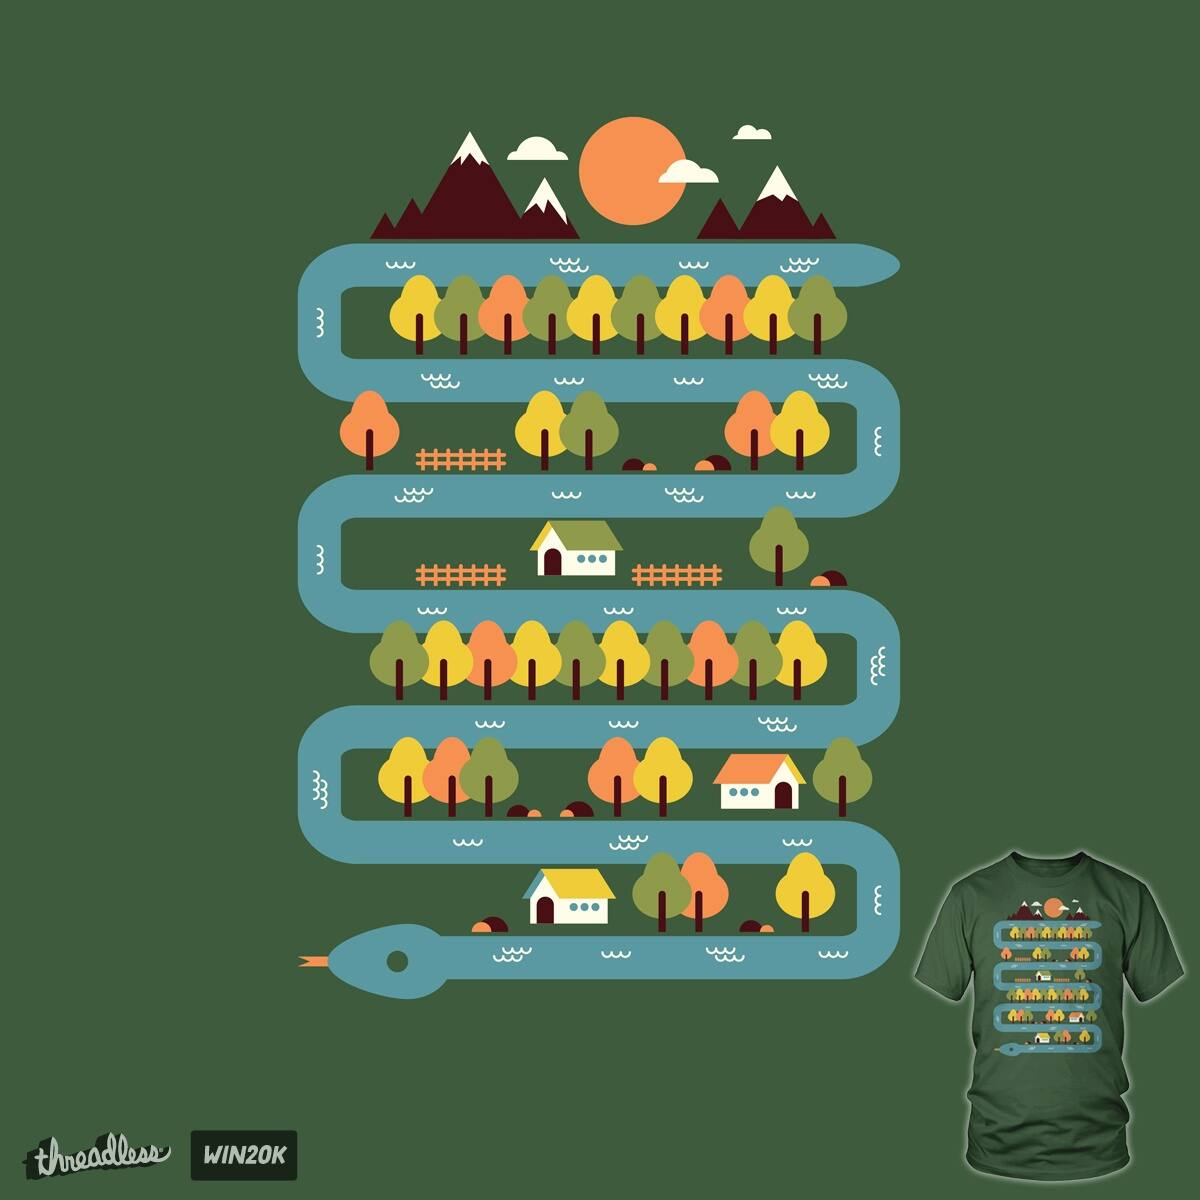 Snake River by StevenT on Threadless